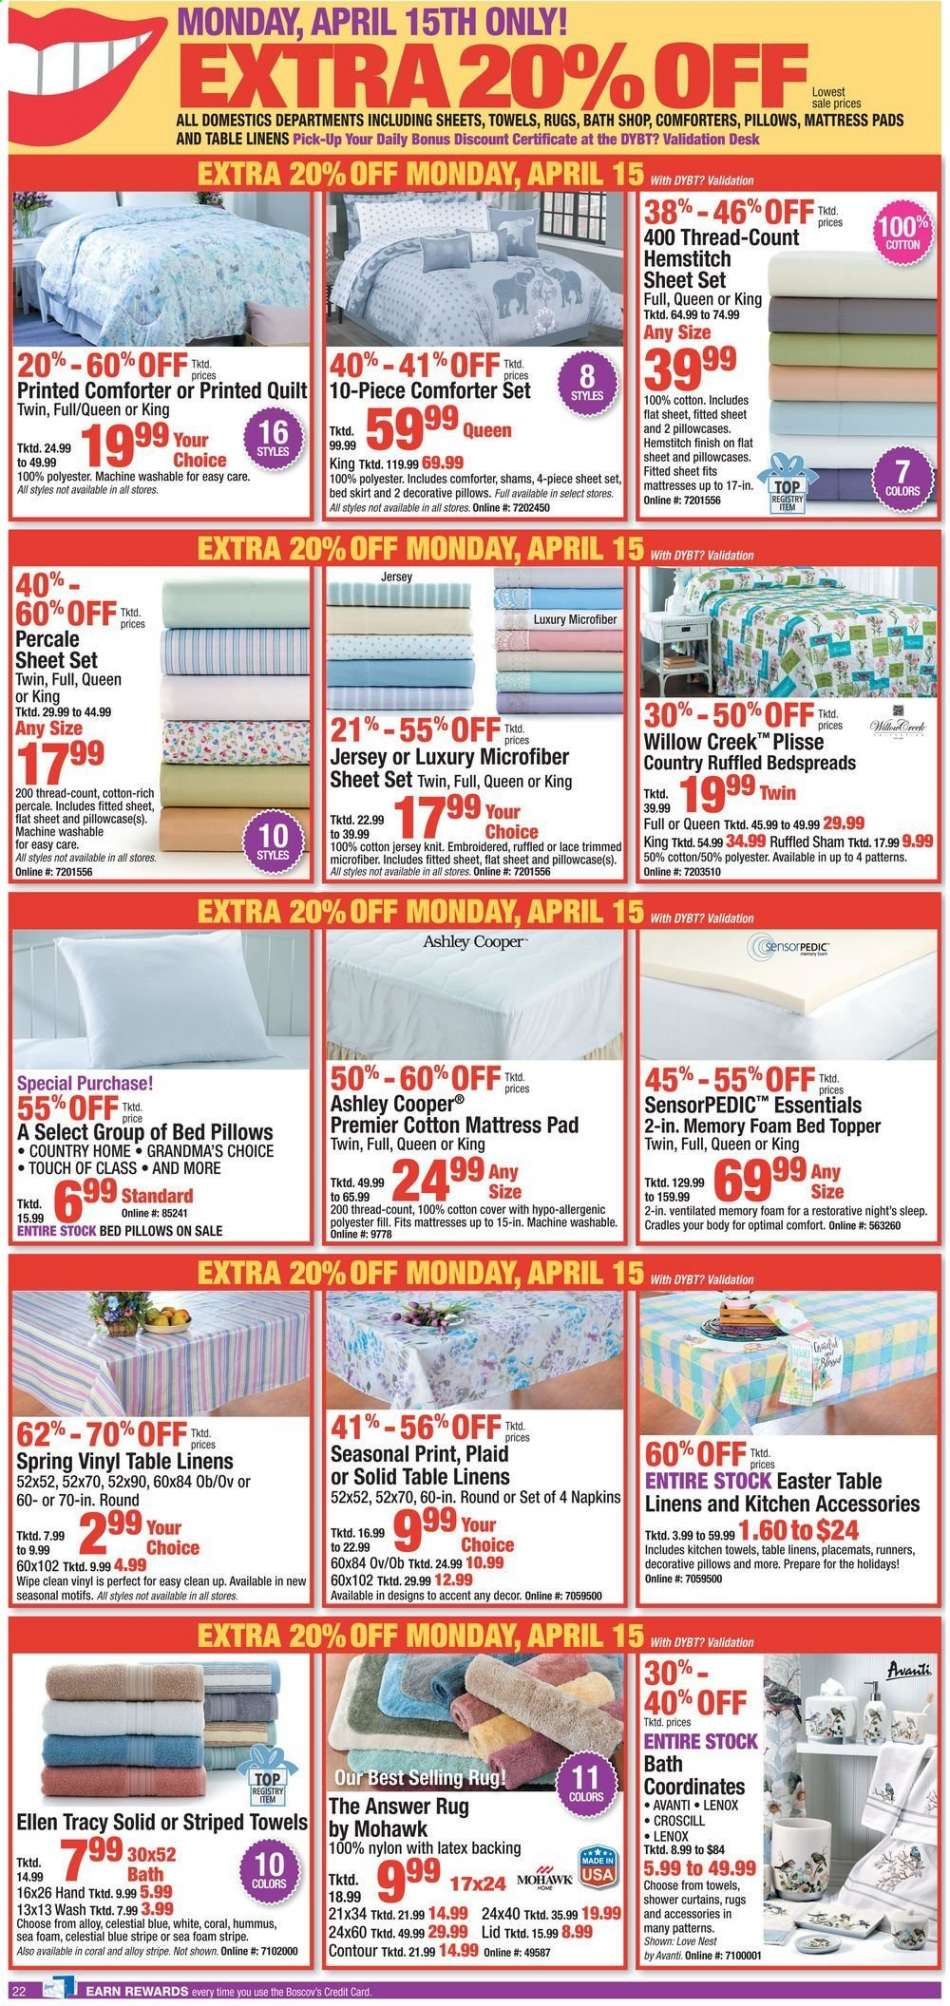 8895c2584e7 Boscov's flyer 04.14.2019 - 04.21.2019 | Weekly-ads.us